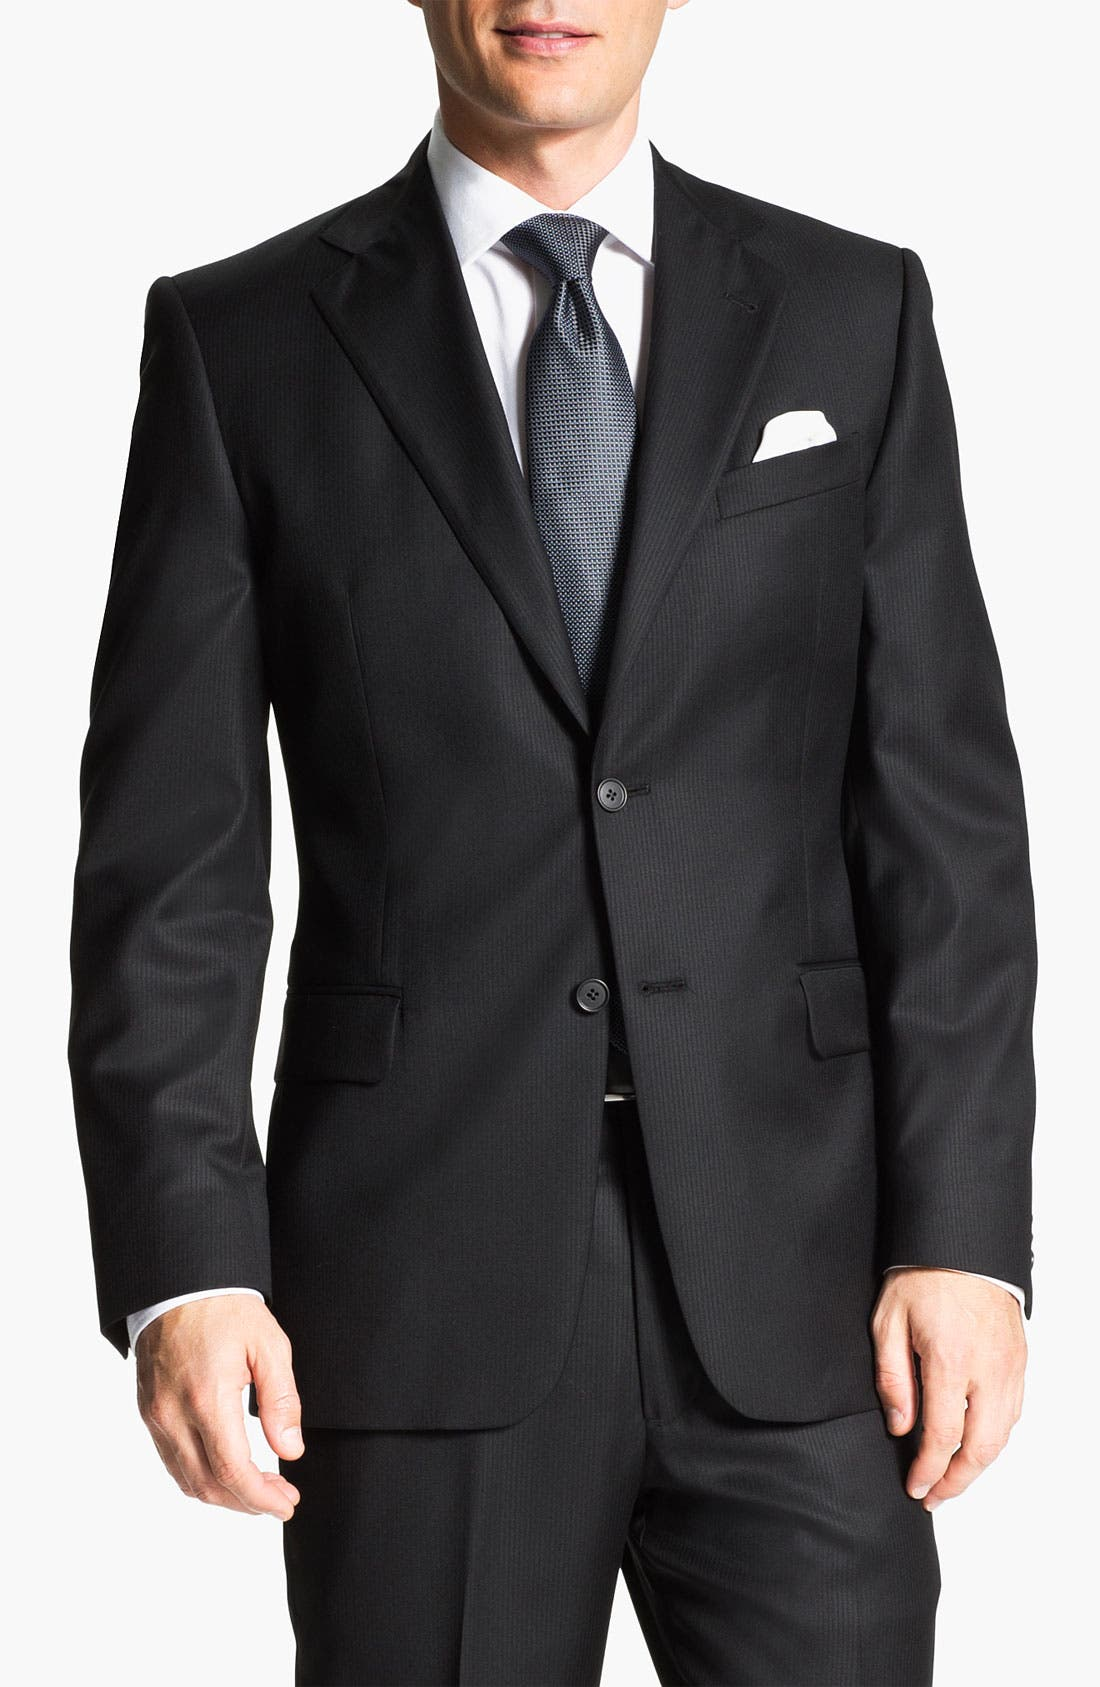 Alternate Image 1 Selected - Joseph Abboud Black Wool Suit